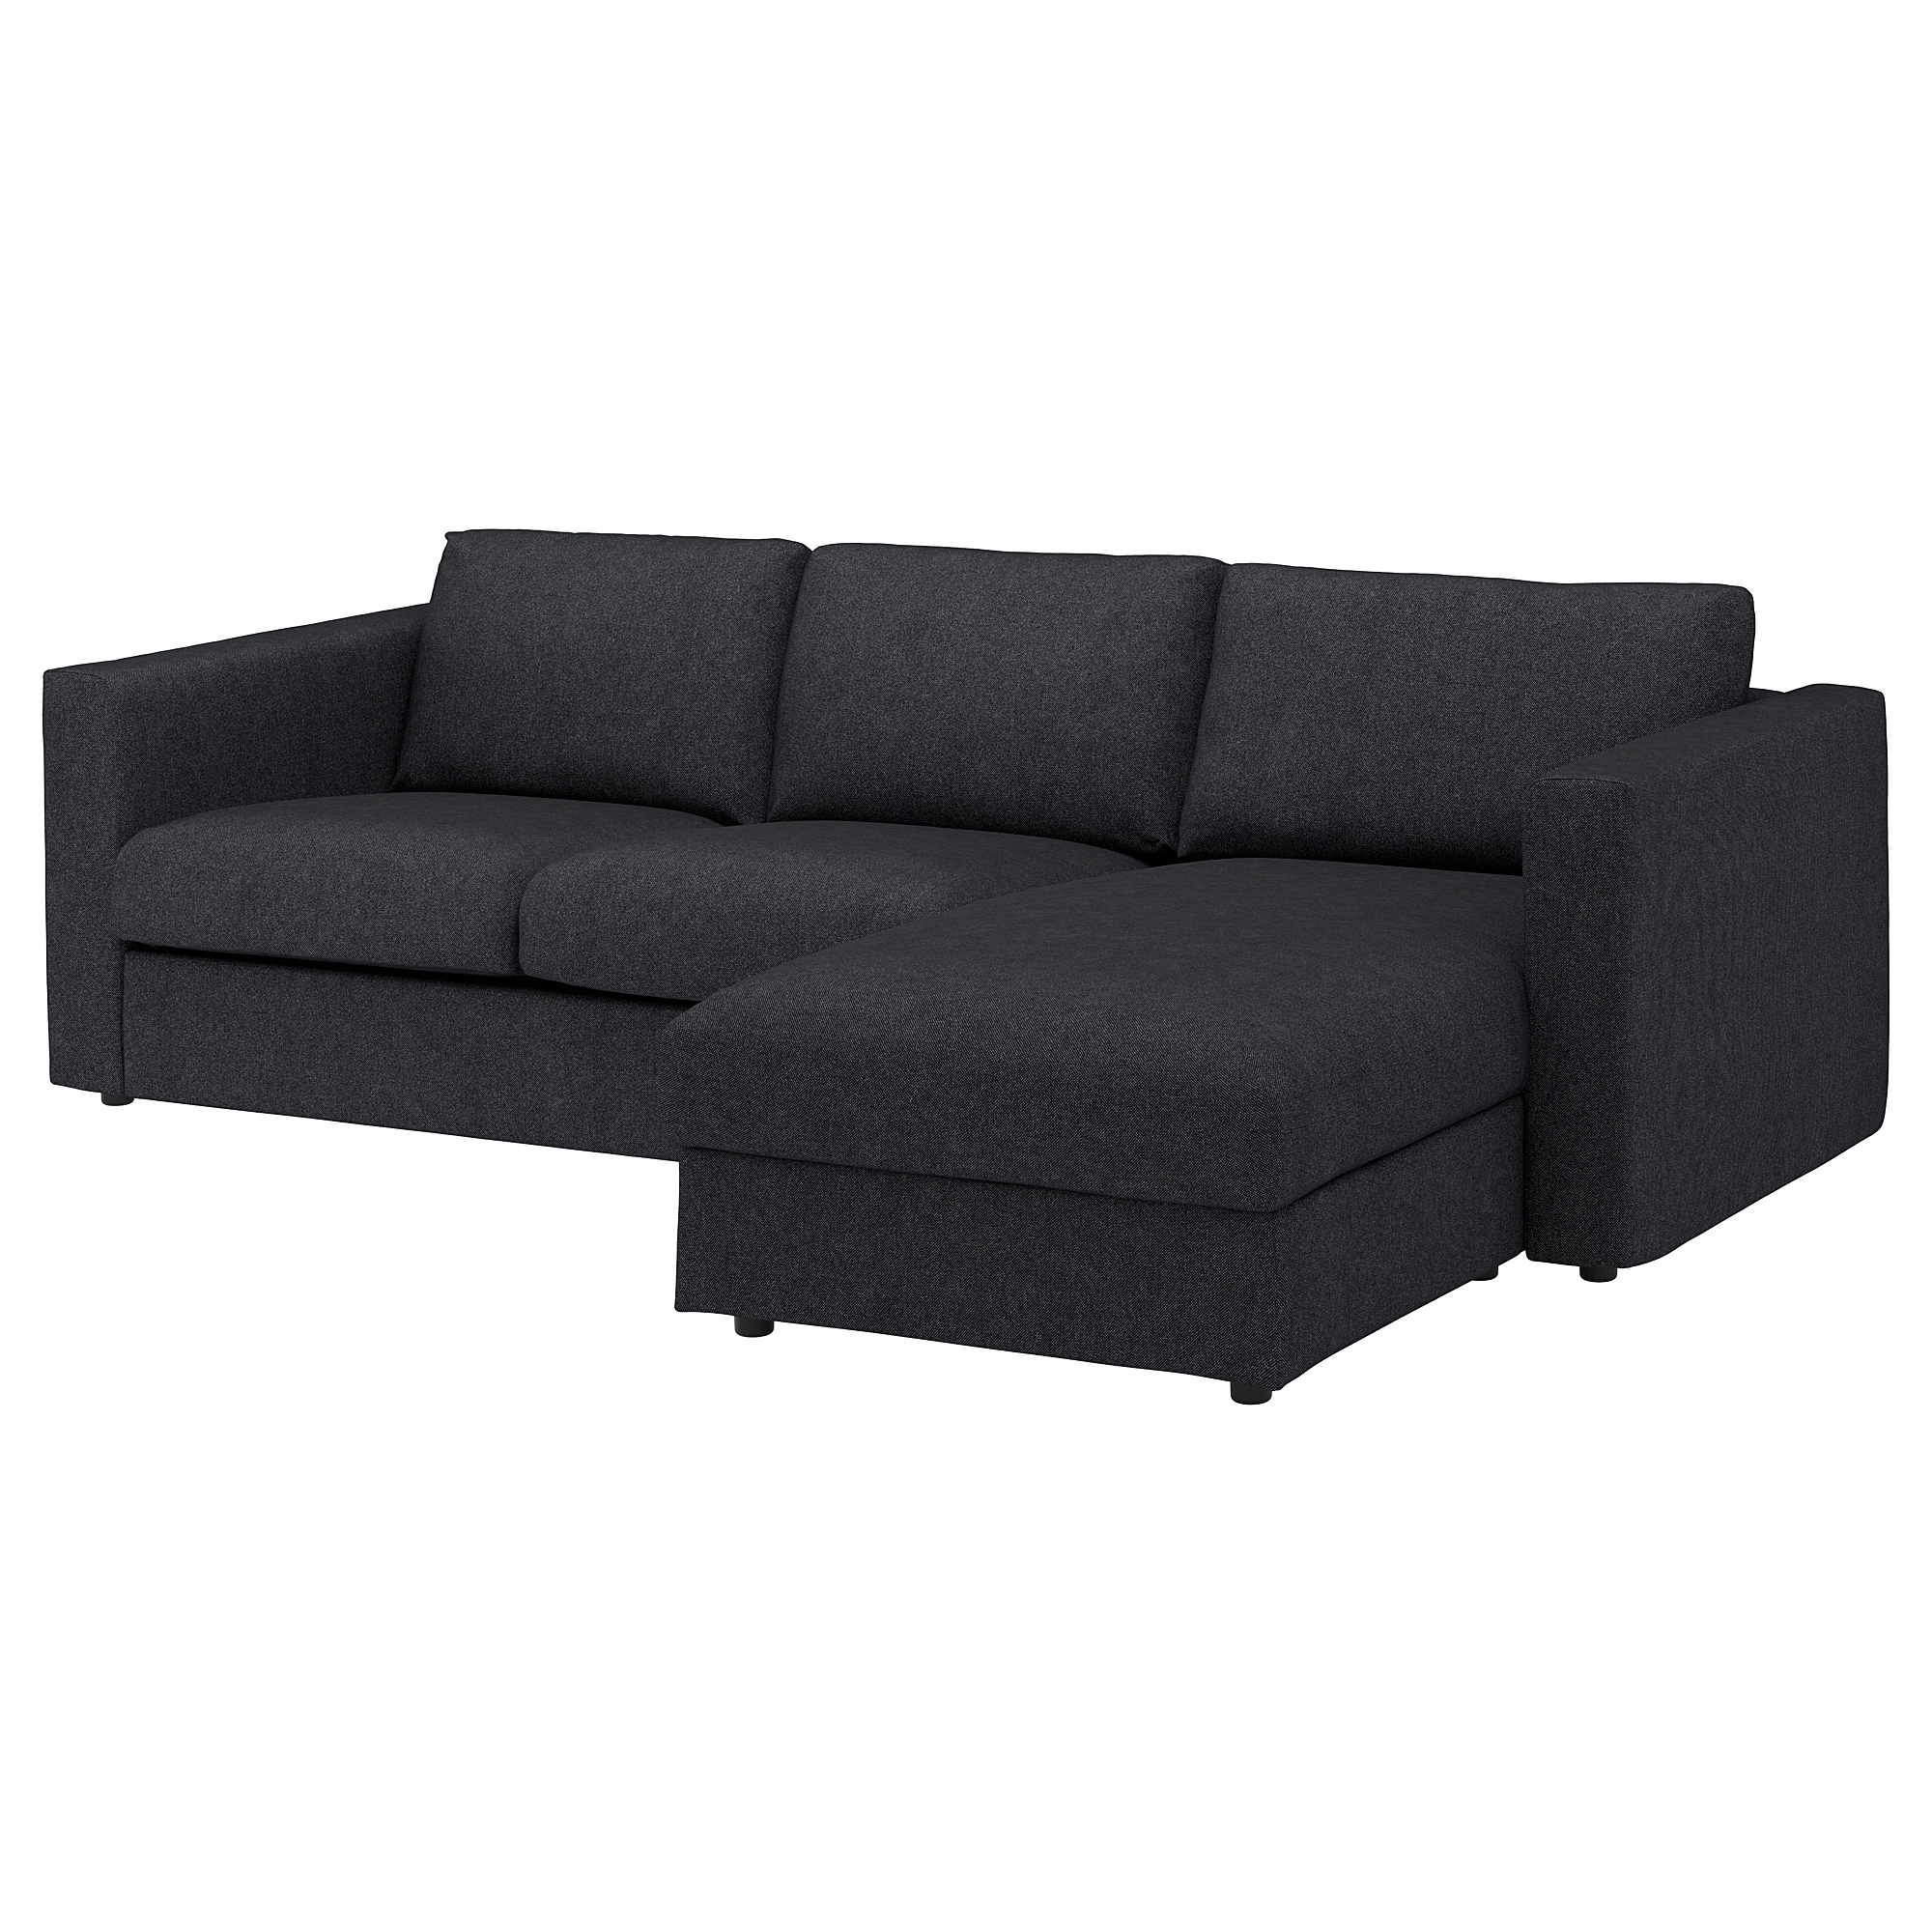 couch comfortable rest in completed left on sofa furniture arm also seating chaise with minimalist cushions inspirations sloping white pin leather legs finishing concrete